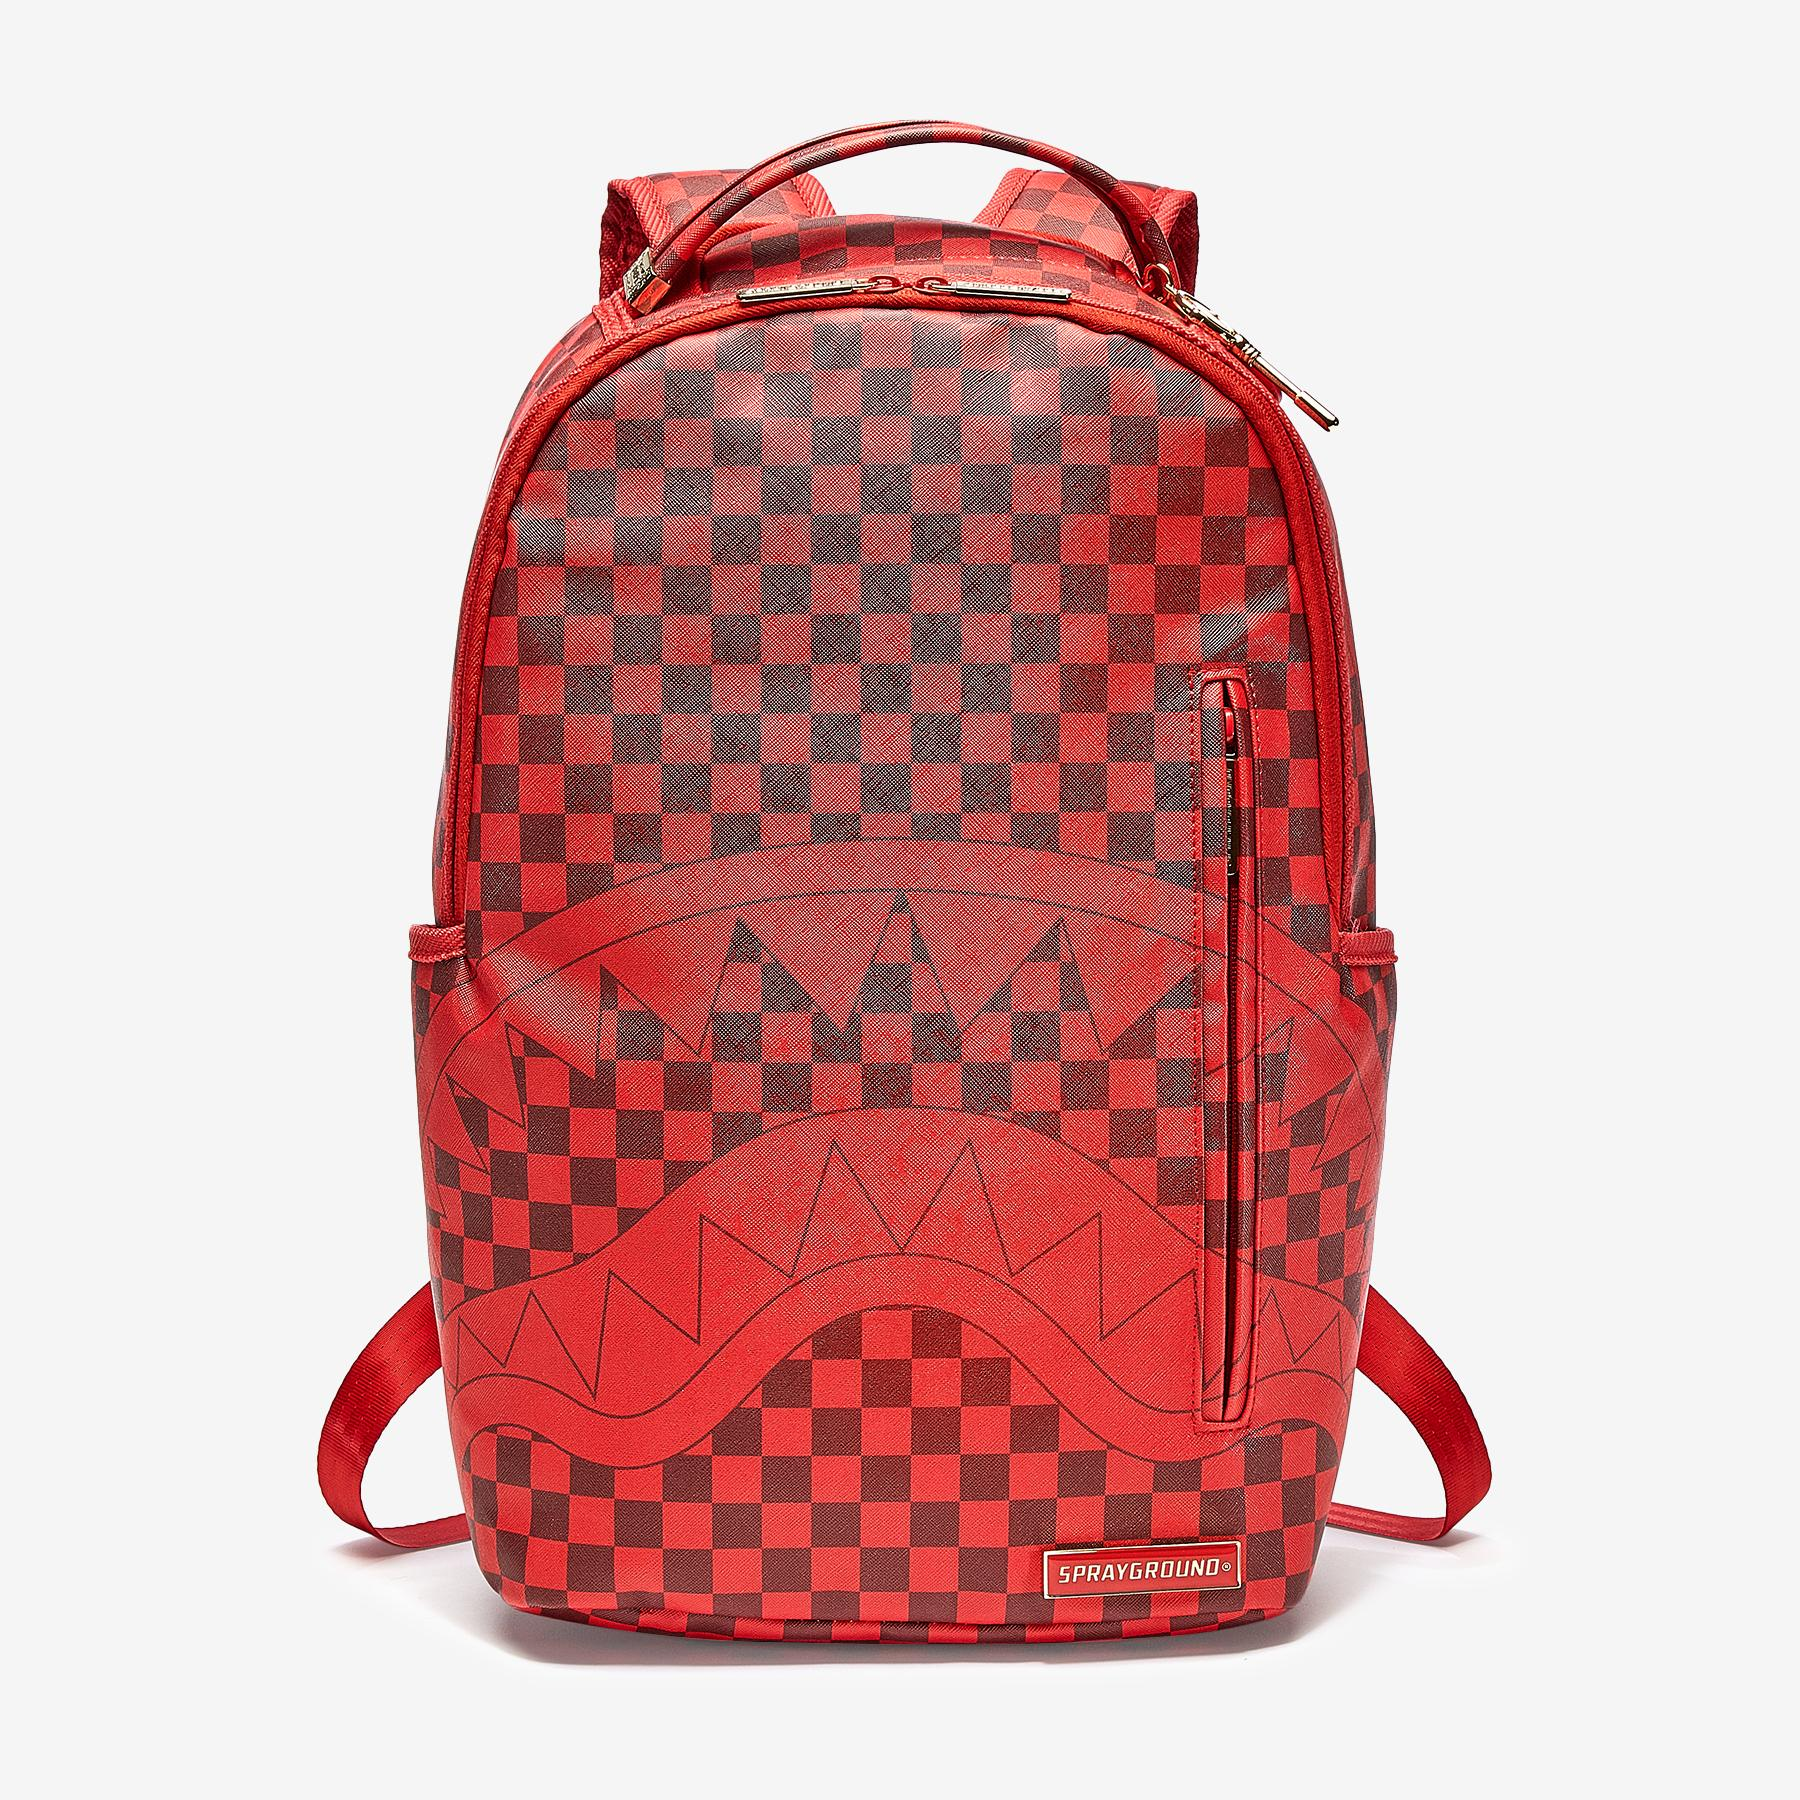 Sharks In Paris (Red Checkered Edition) Backpack